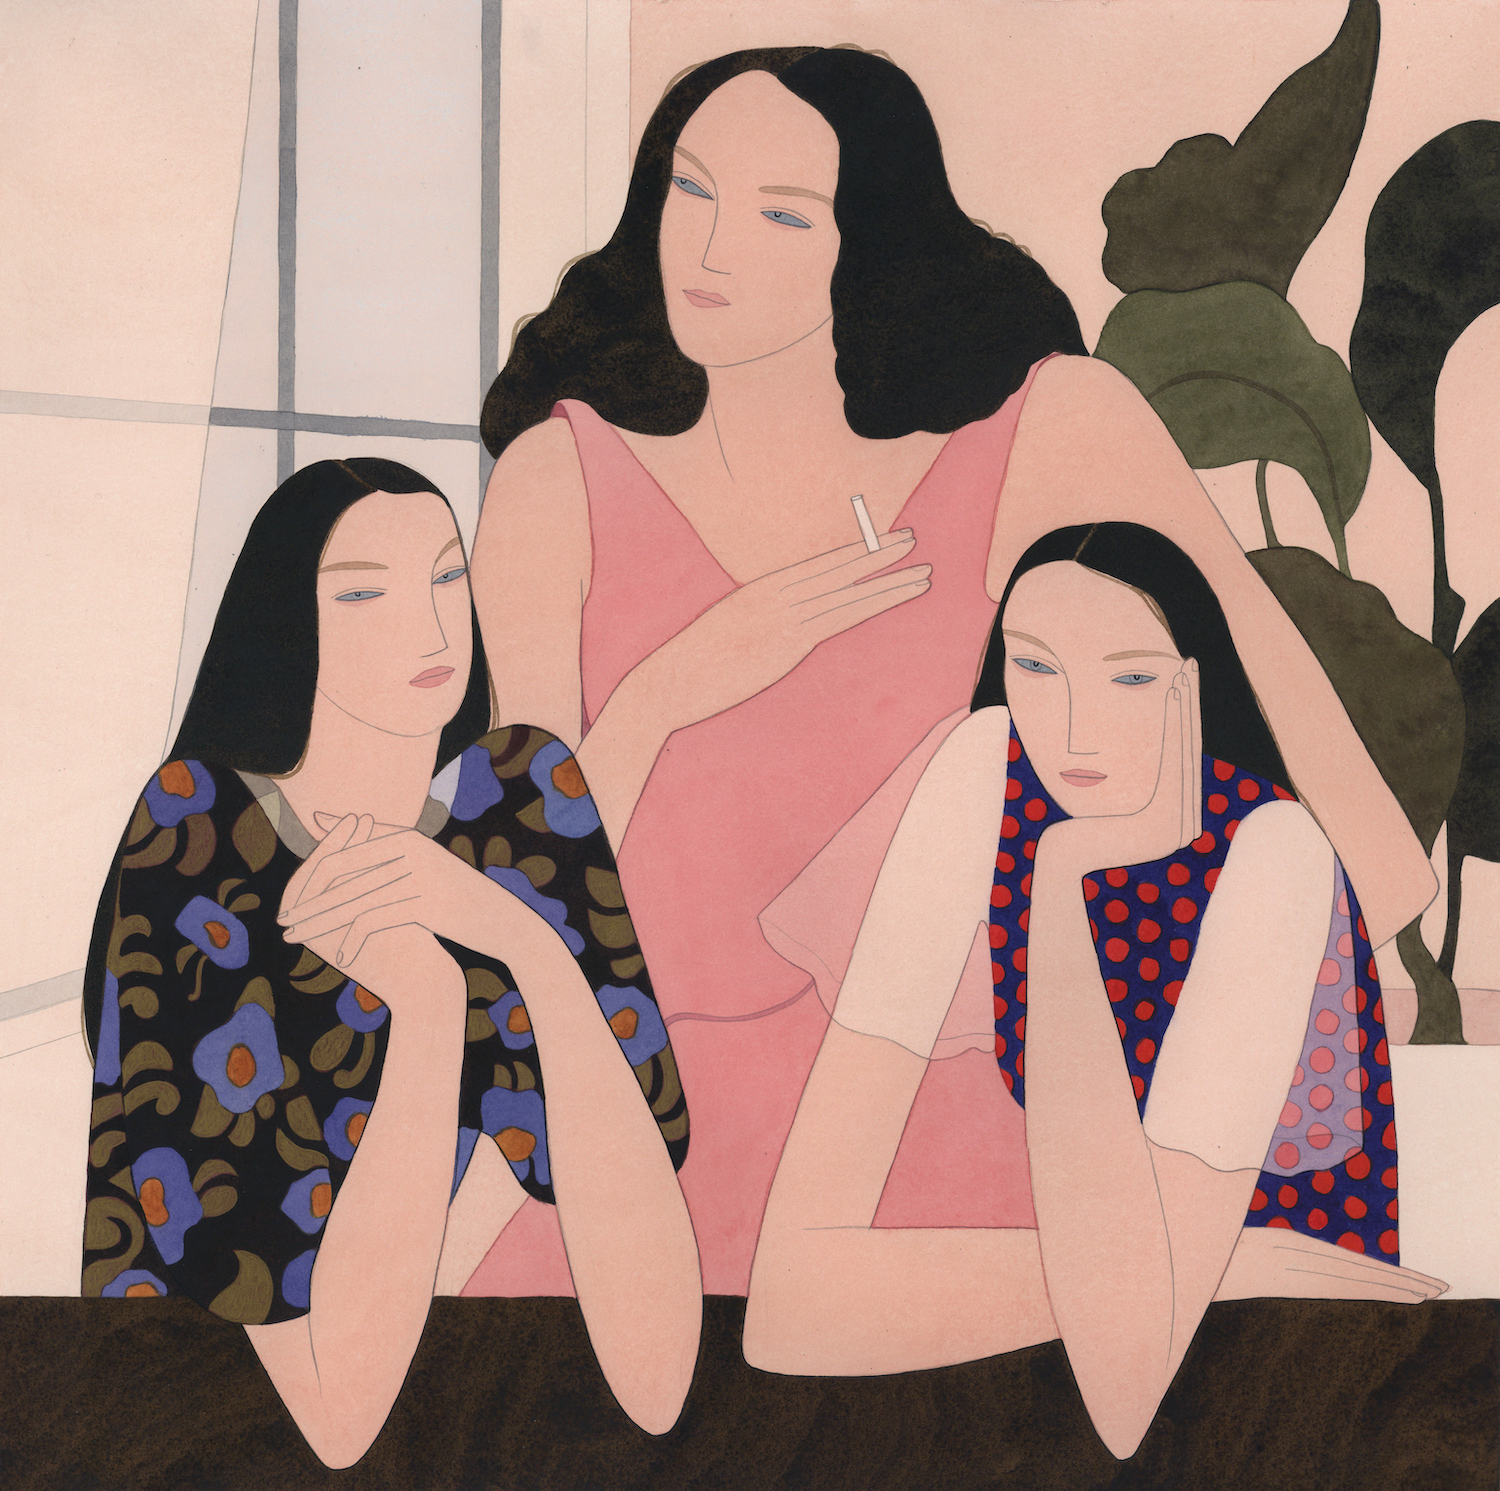 Kelly Beeman: A Fantastical Life